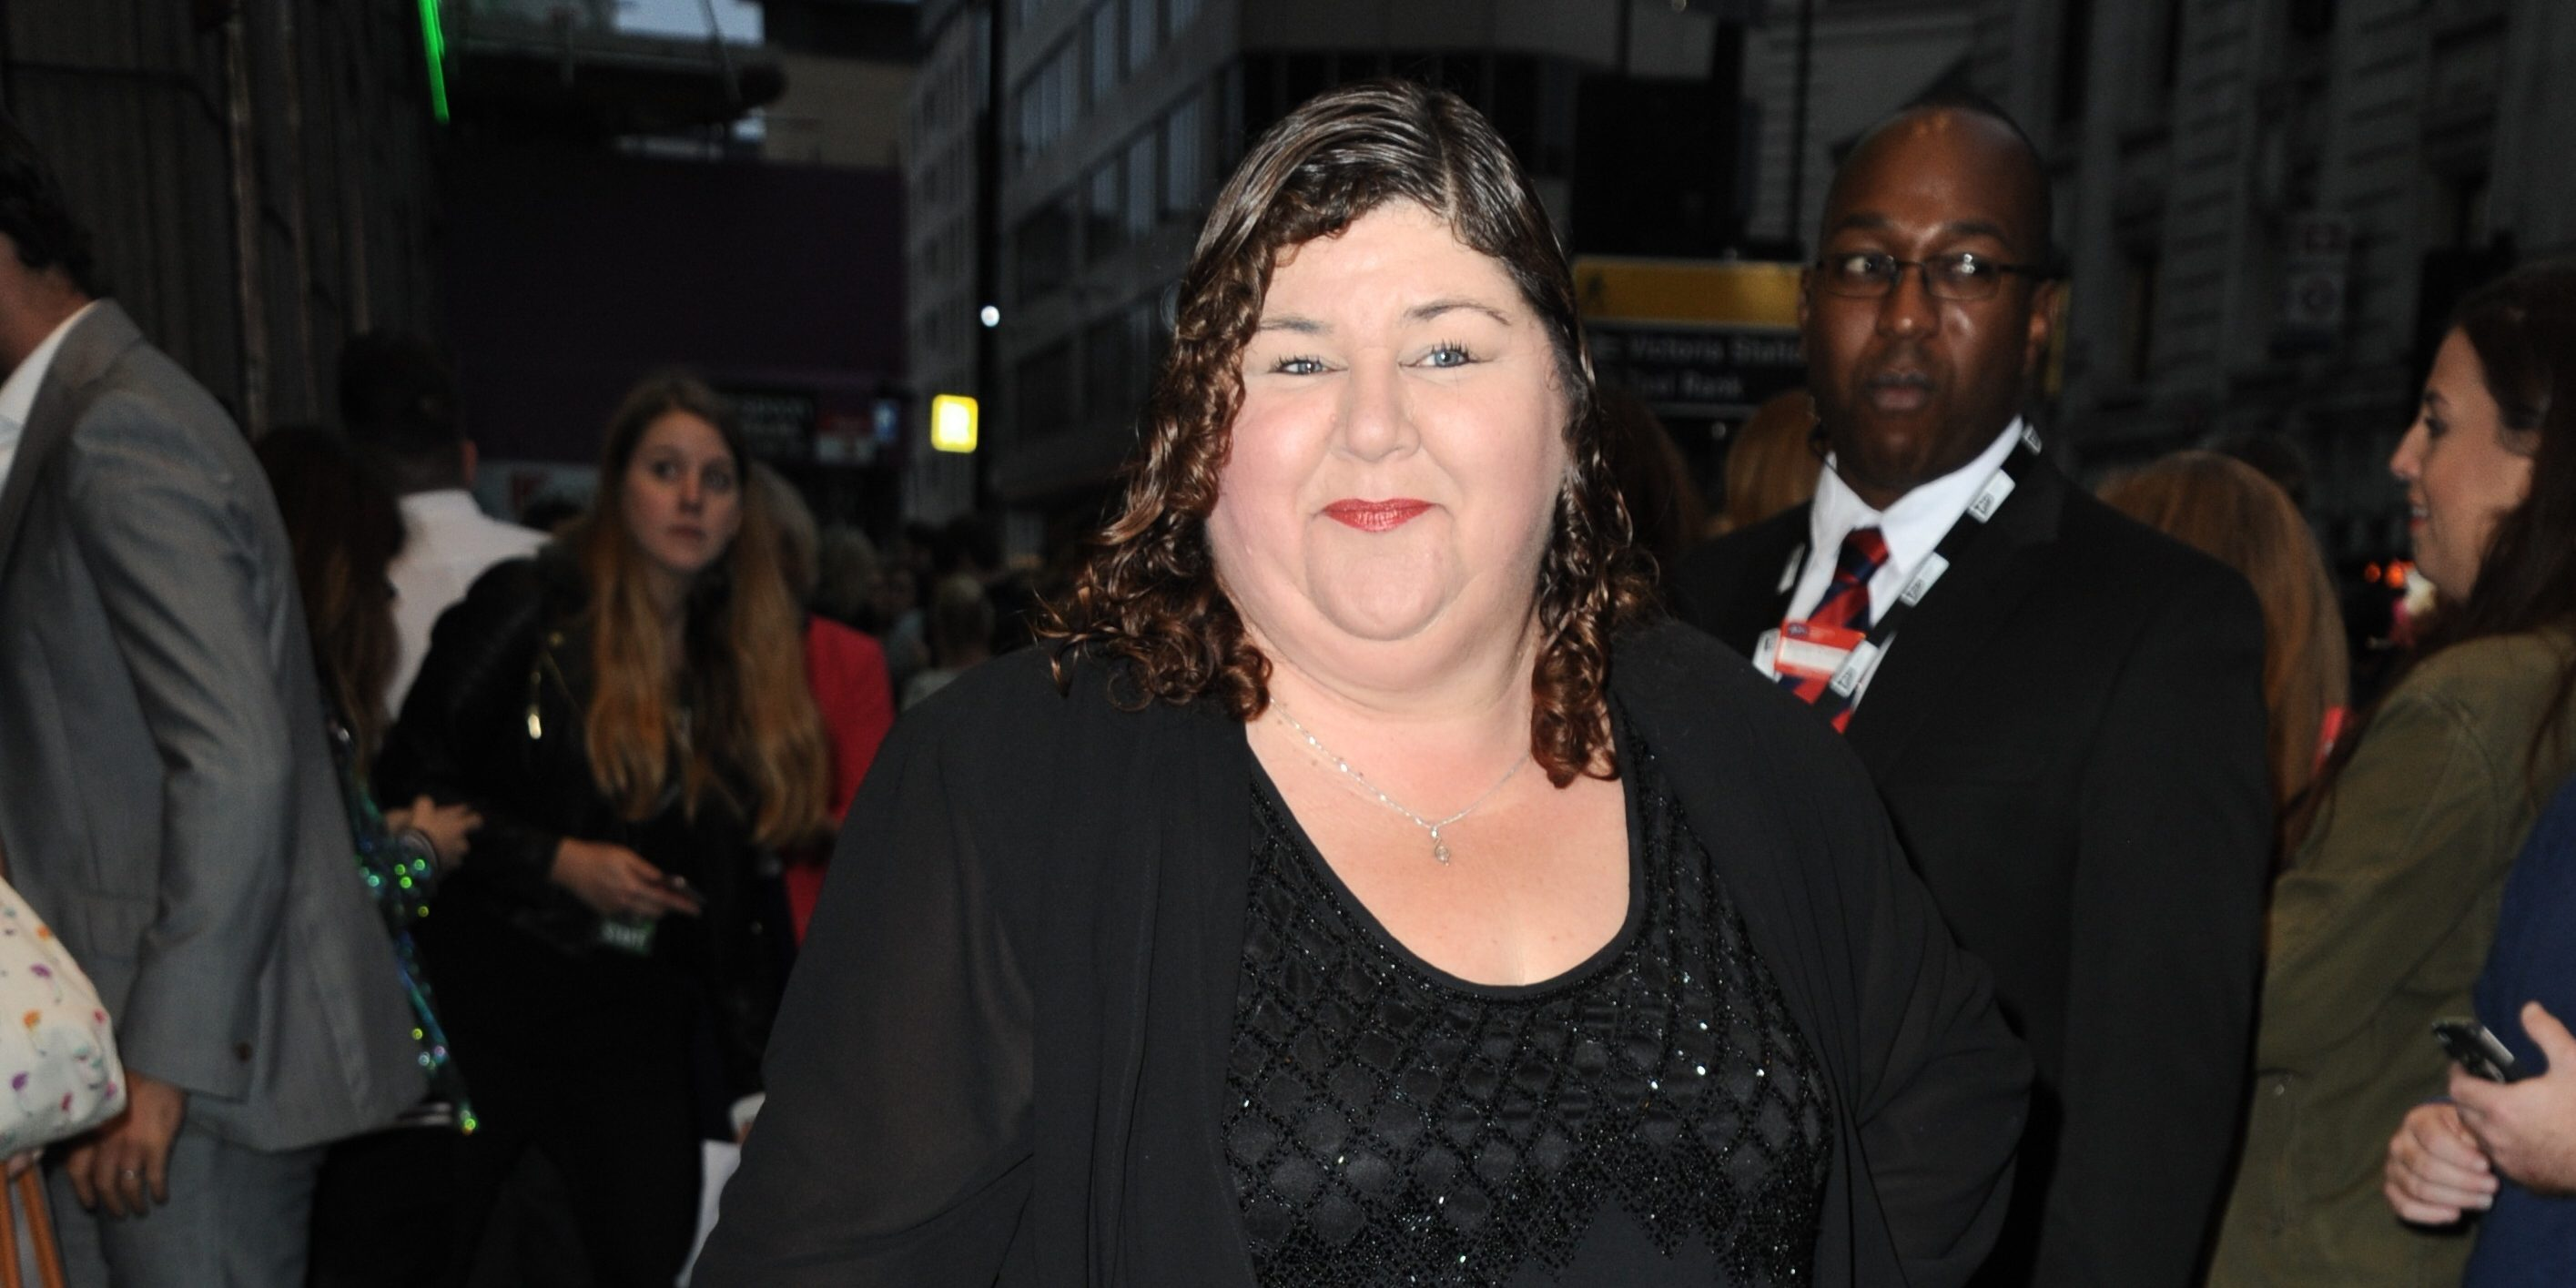 Former EastEnders star Cheryl Fergison pays tribute to 'lookalike' mum on the anniversary of her passing